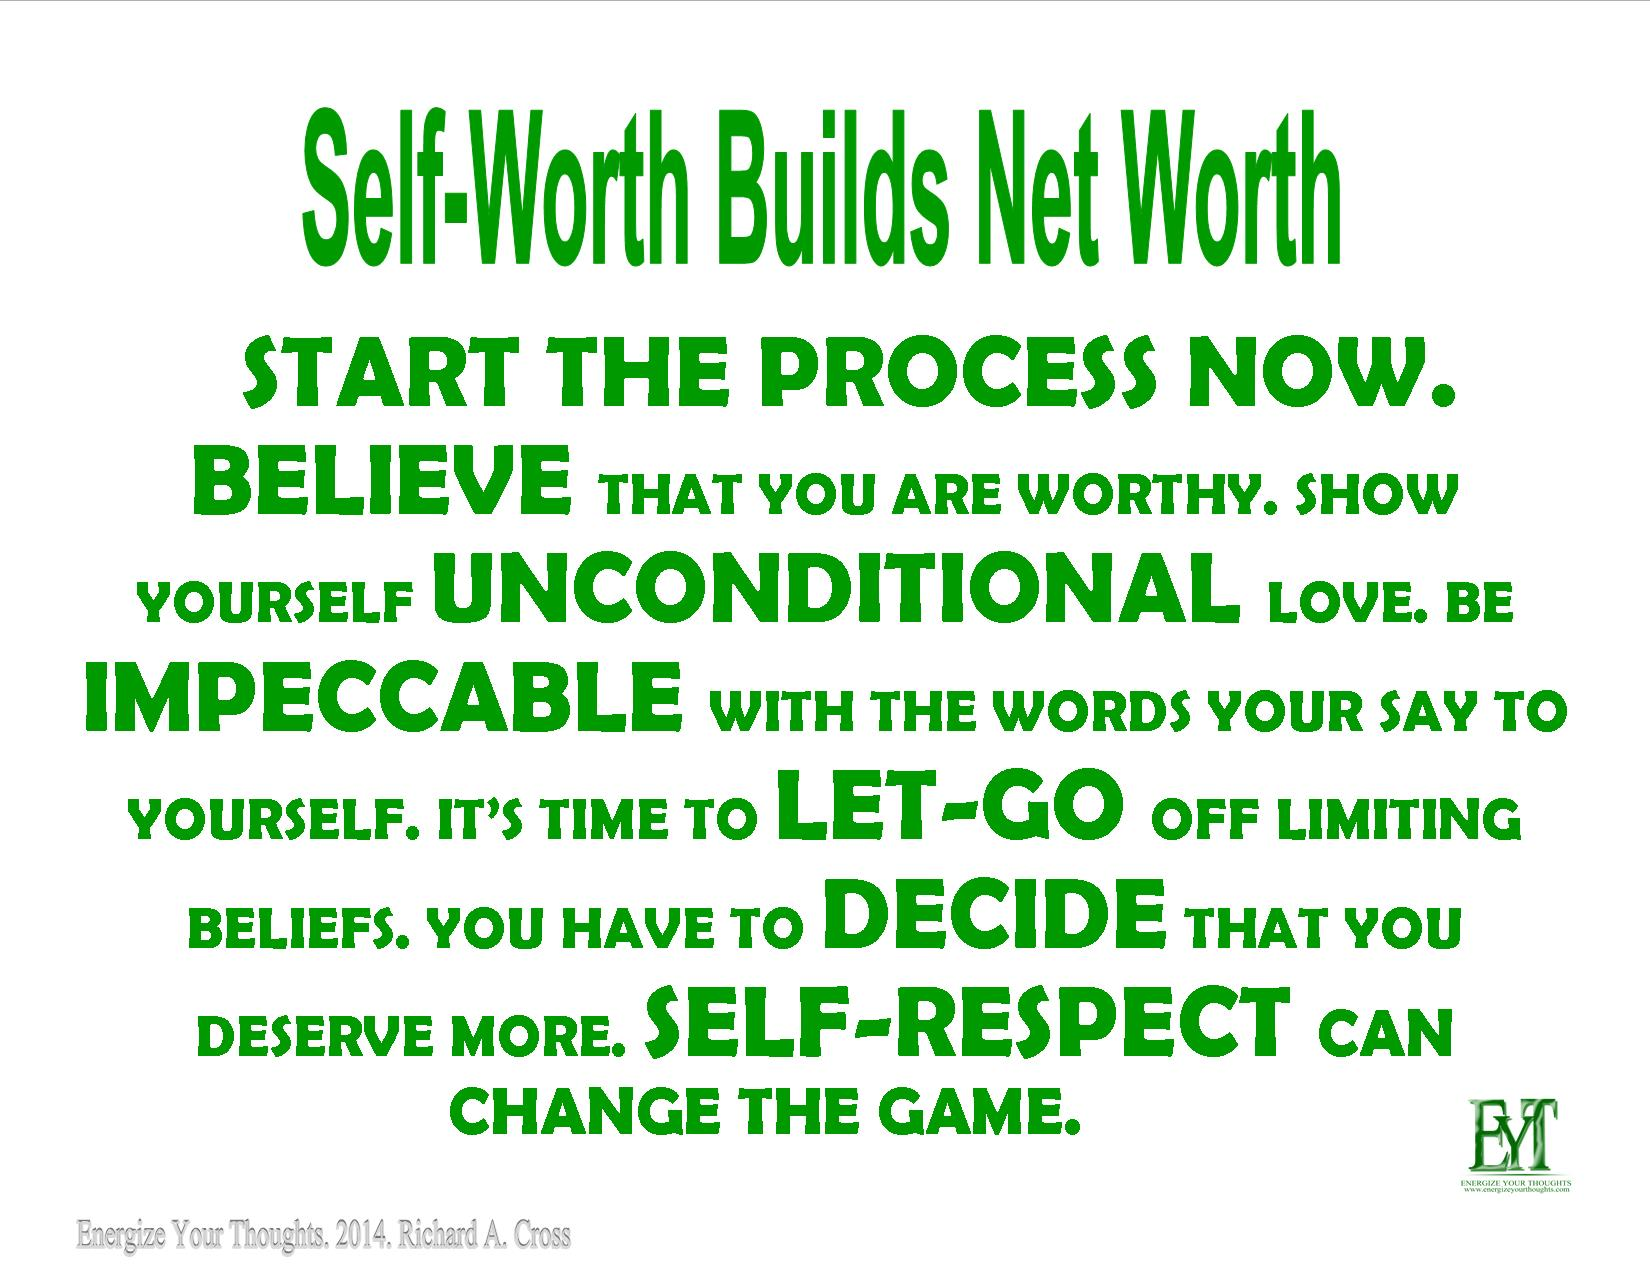 Self-Worth Builds Net Worth